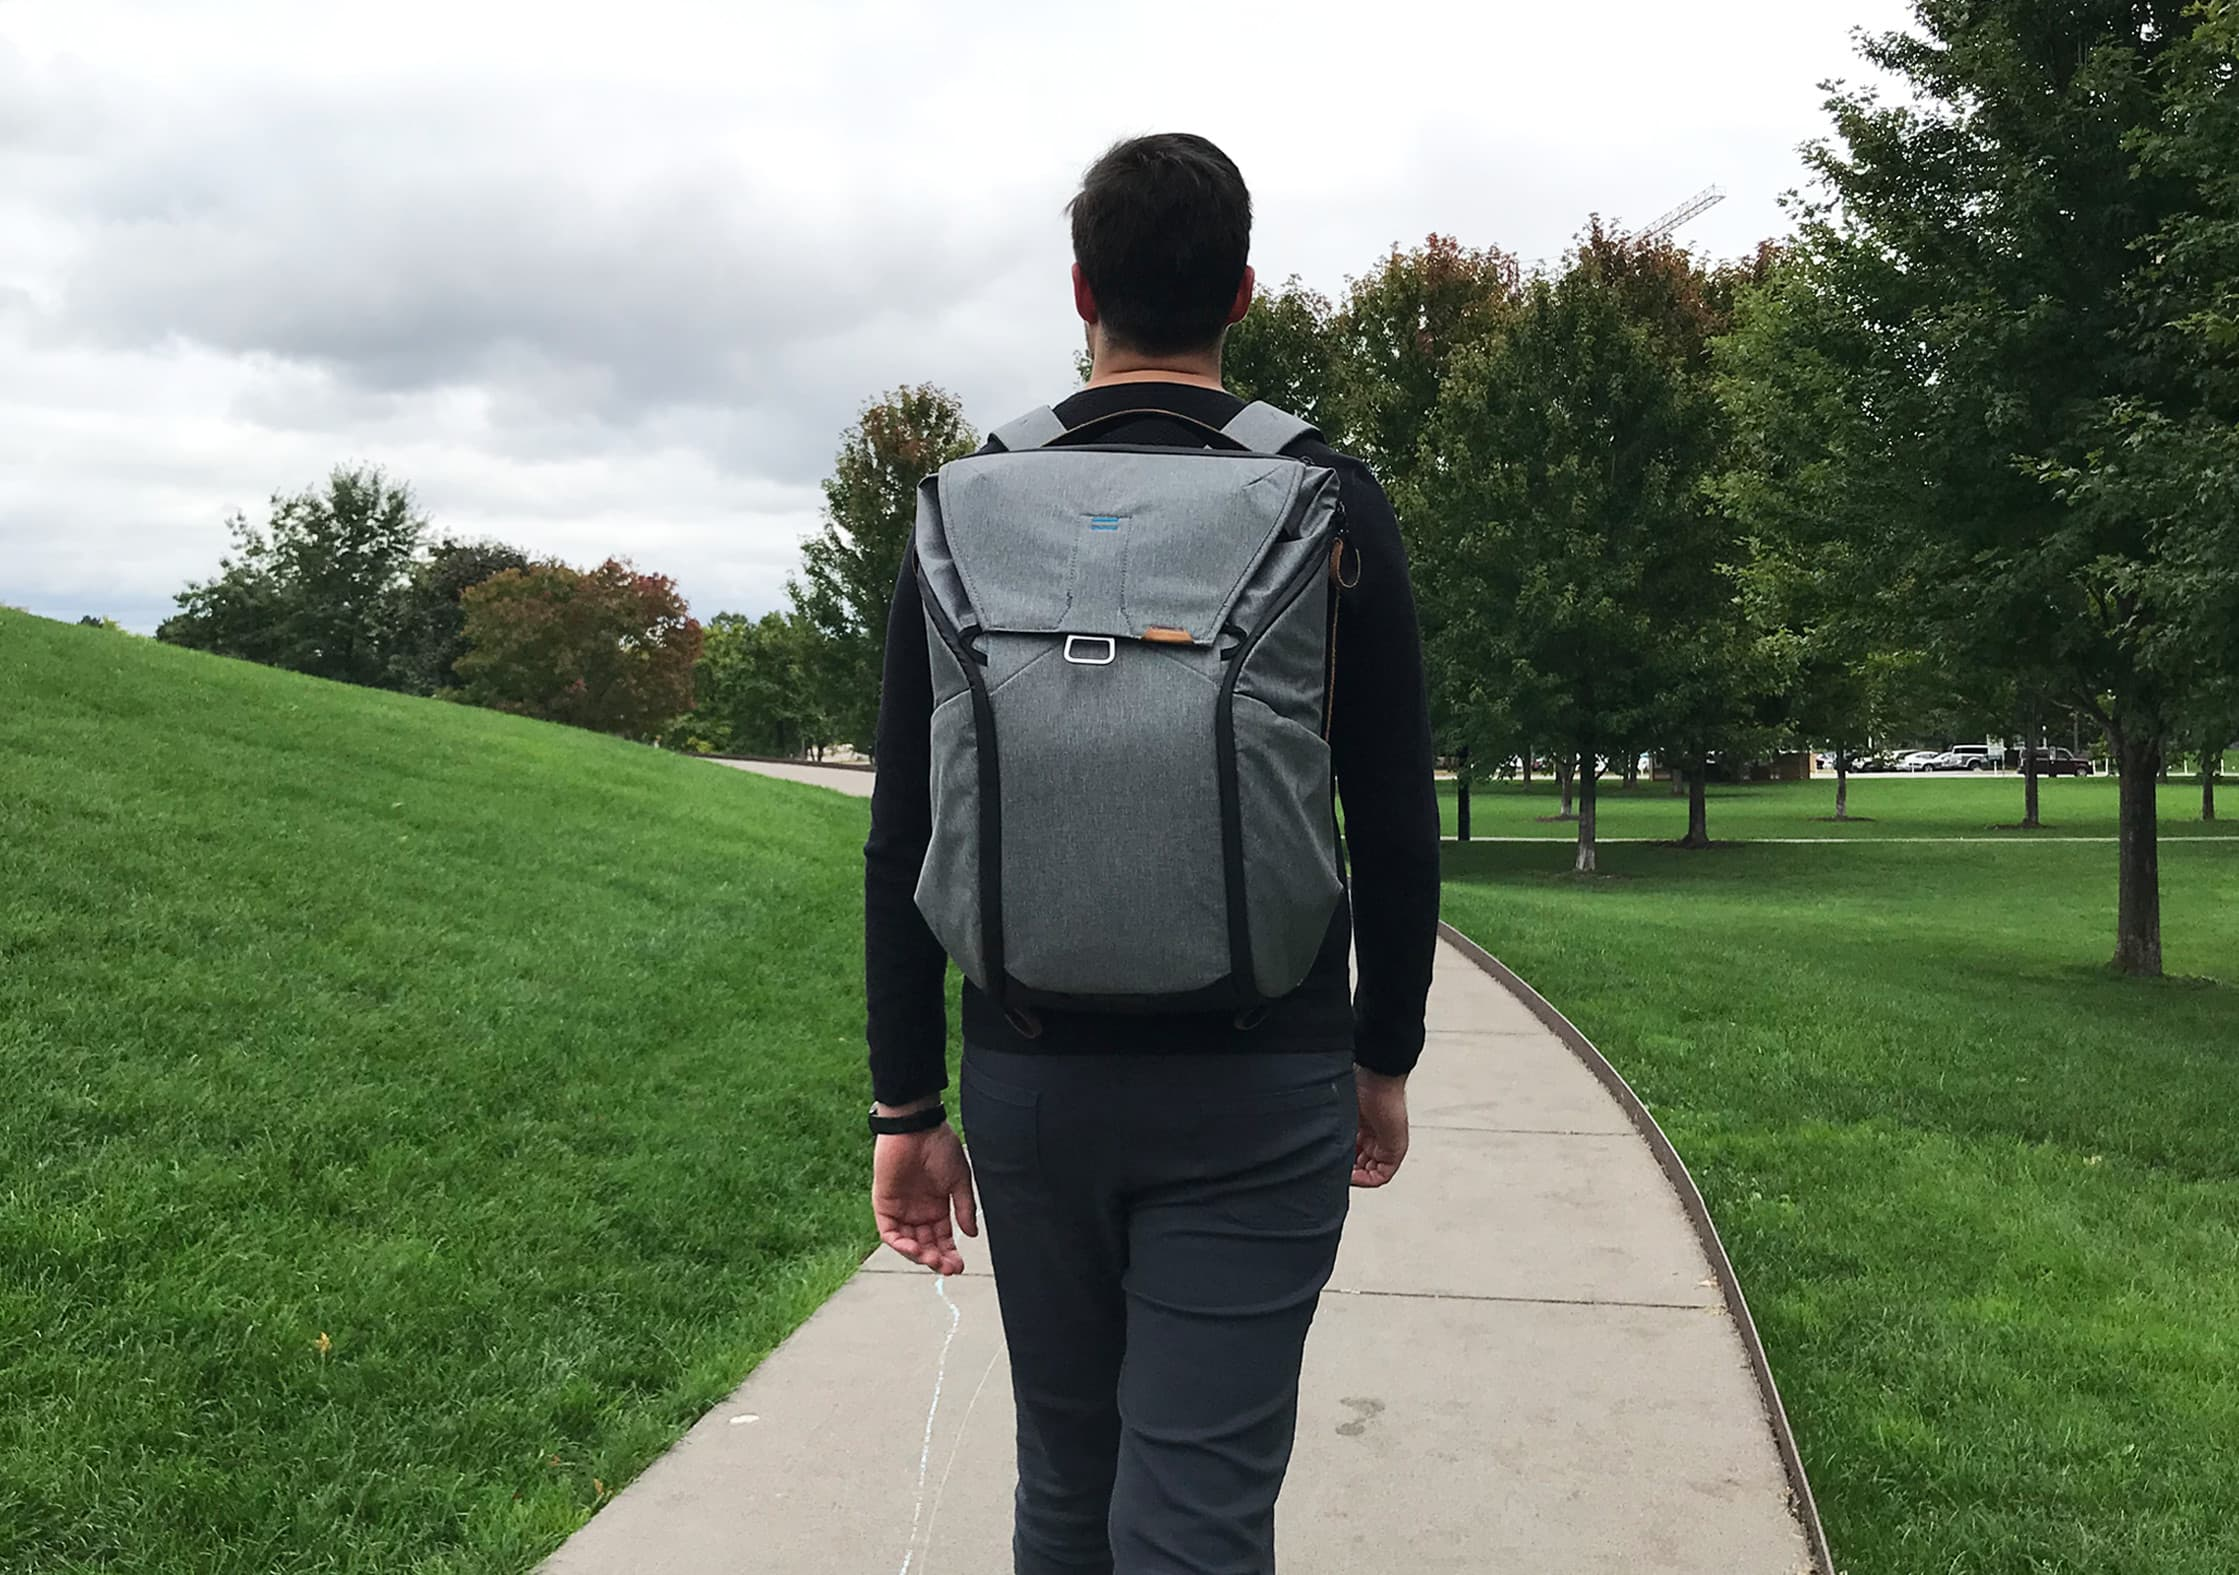 Walking with the Peak Design Everyday Backpack